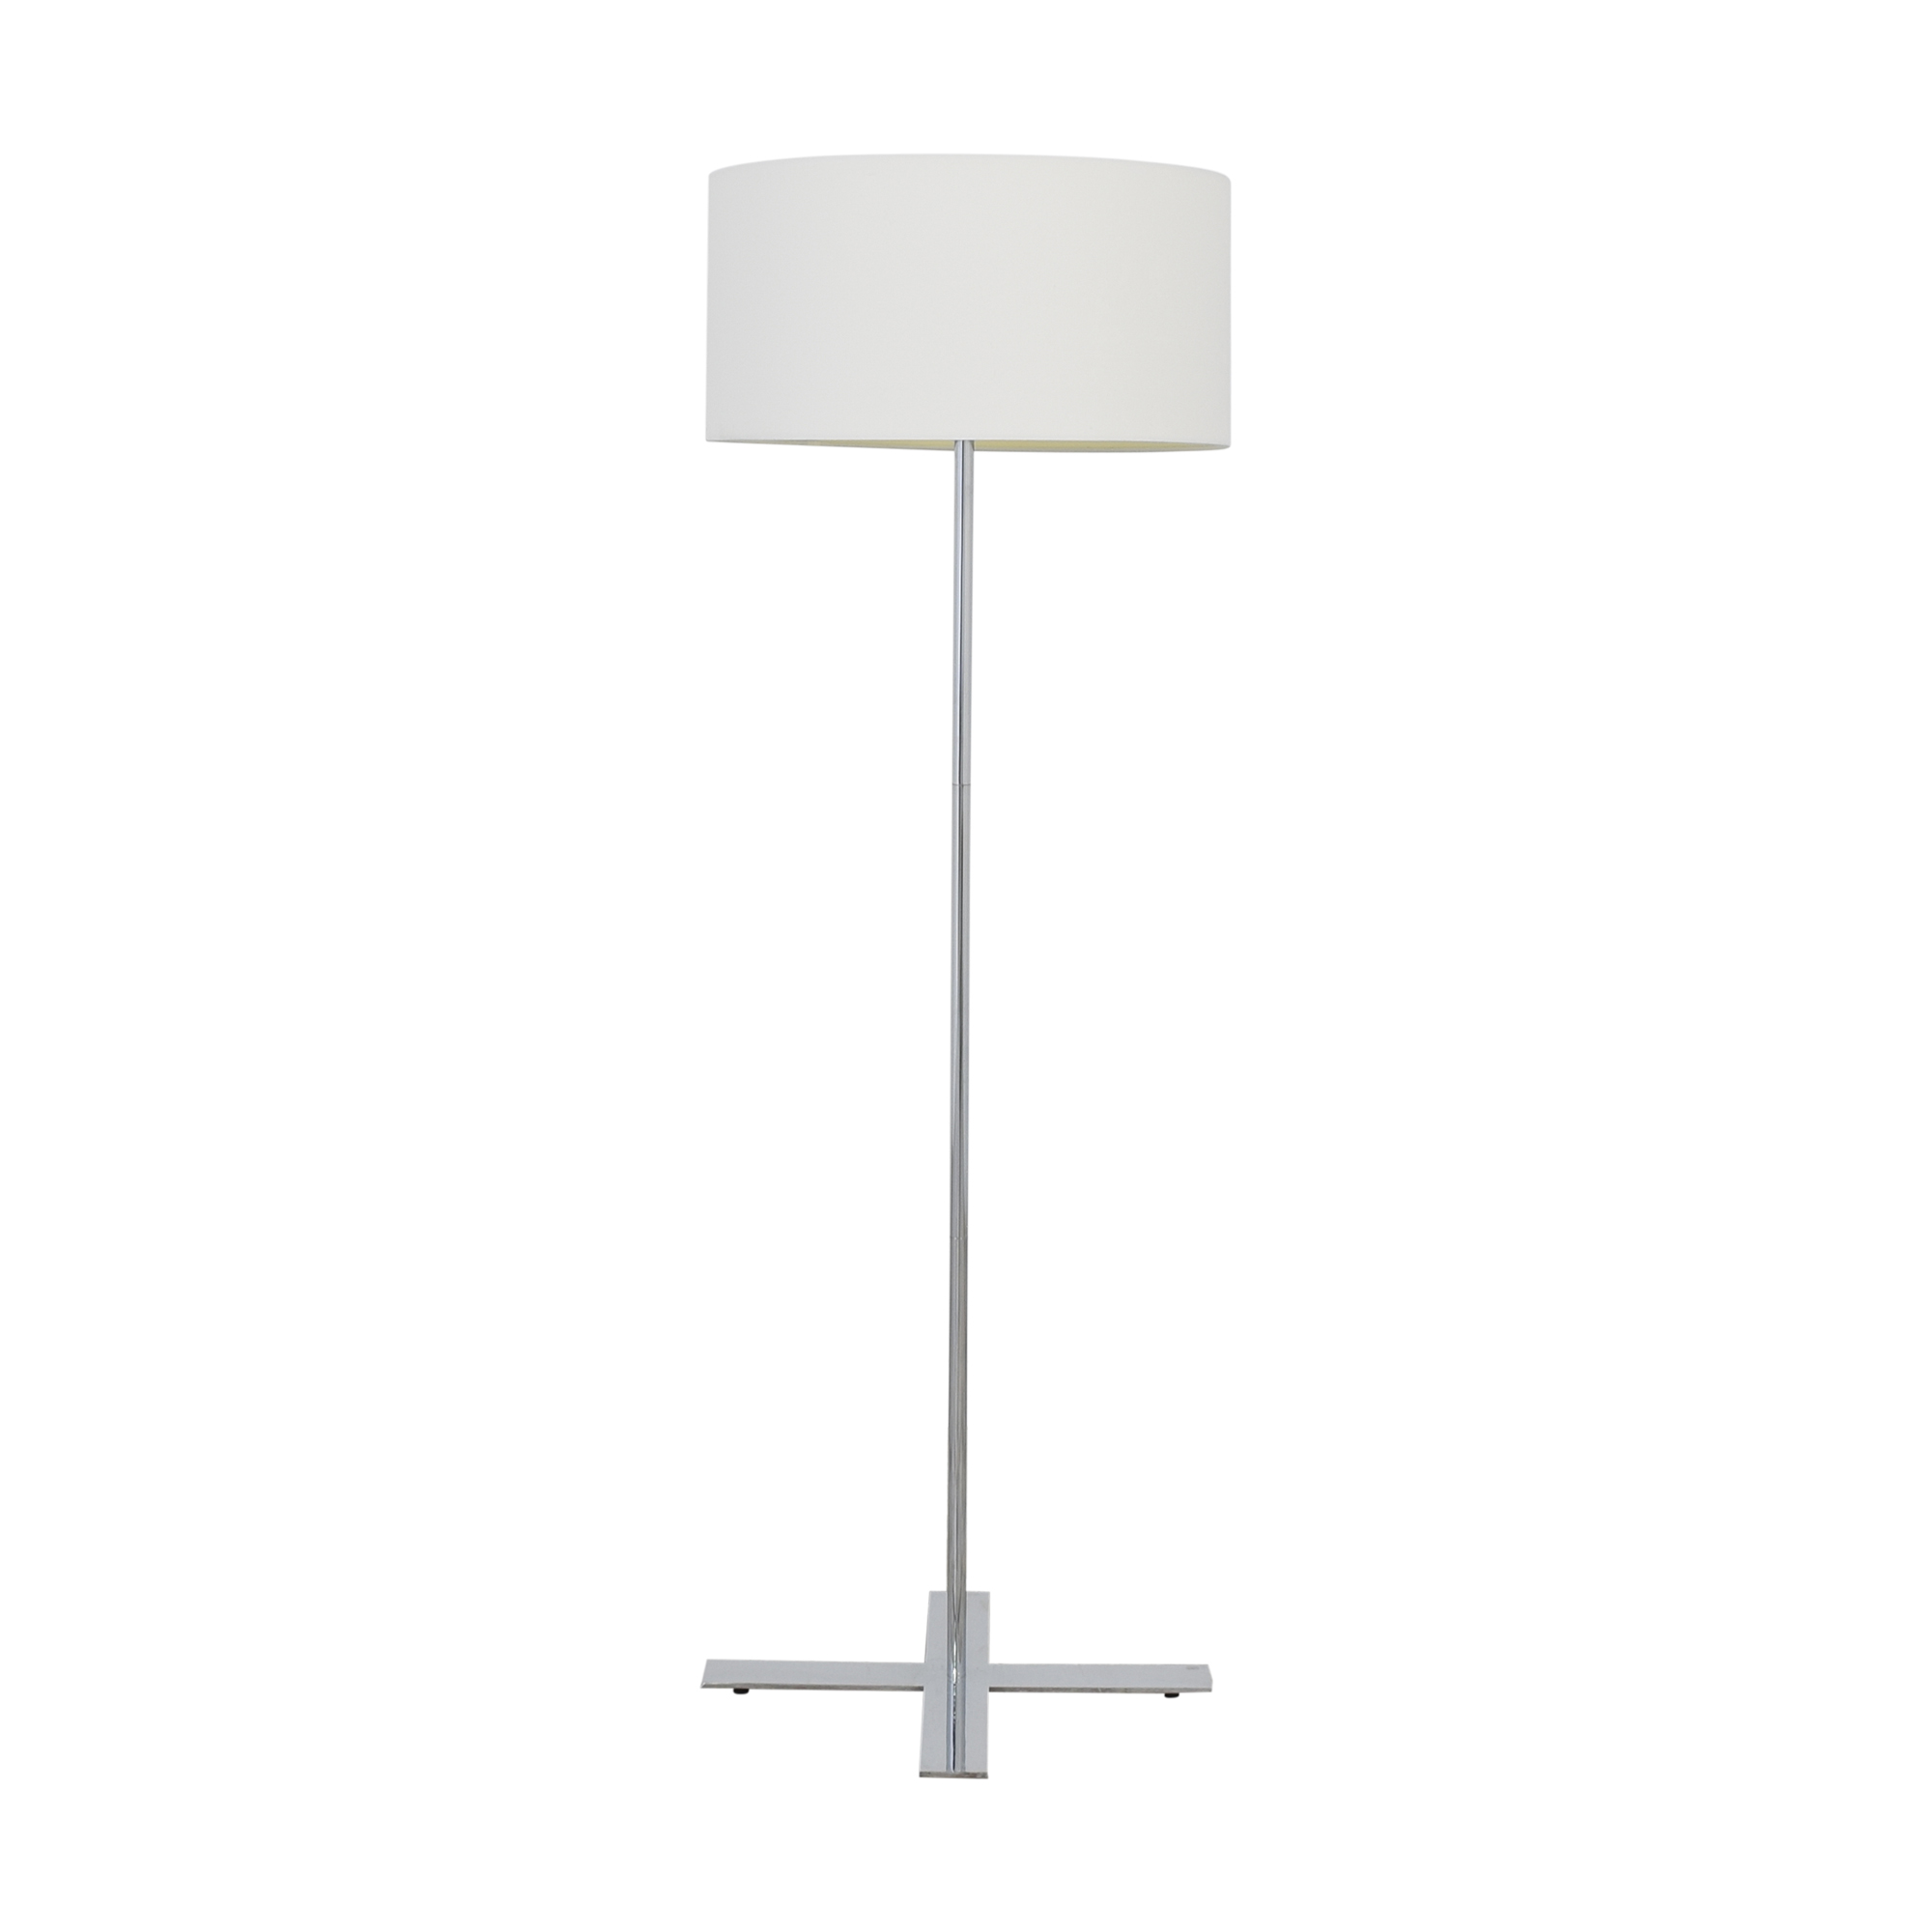 CB2 CB2 Floor Lamp Decor